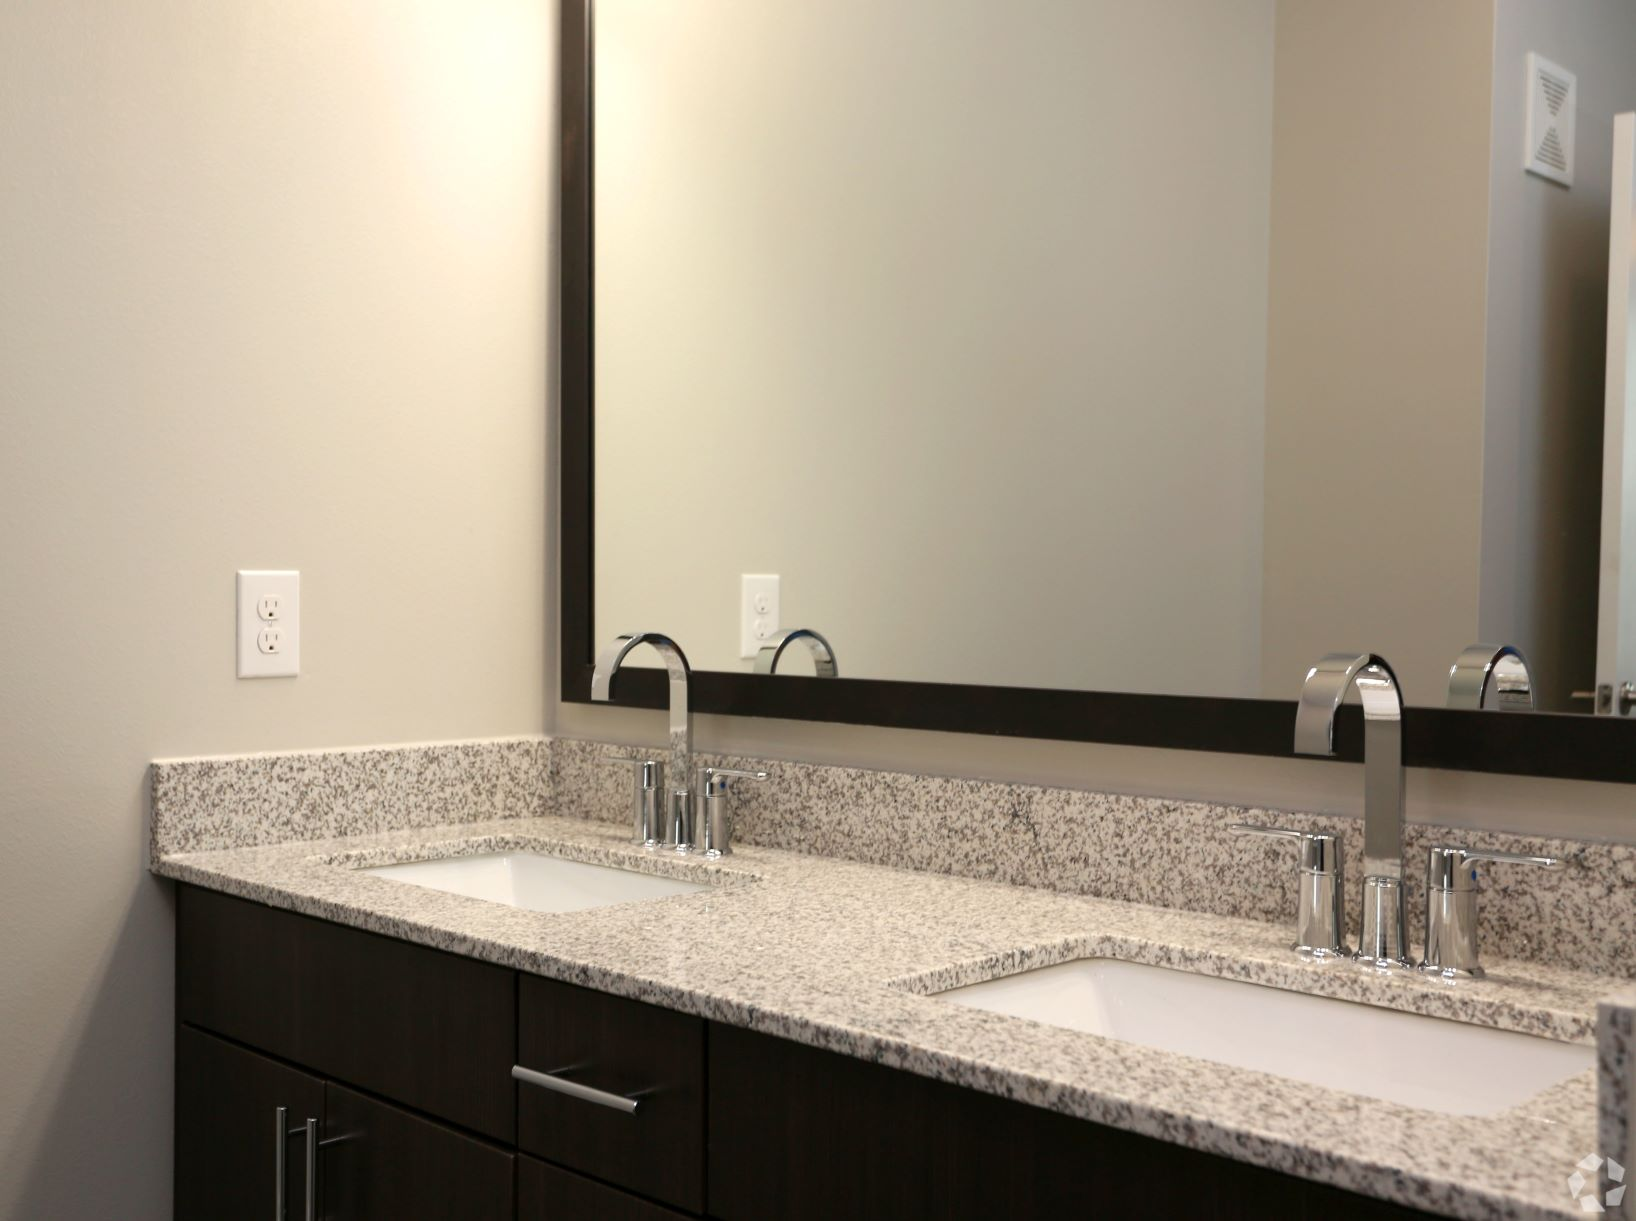 Quartz countertops with elegant framed mirror and walk in shower